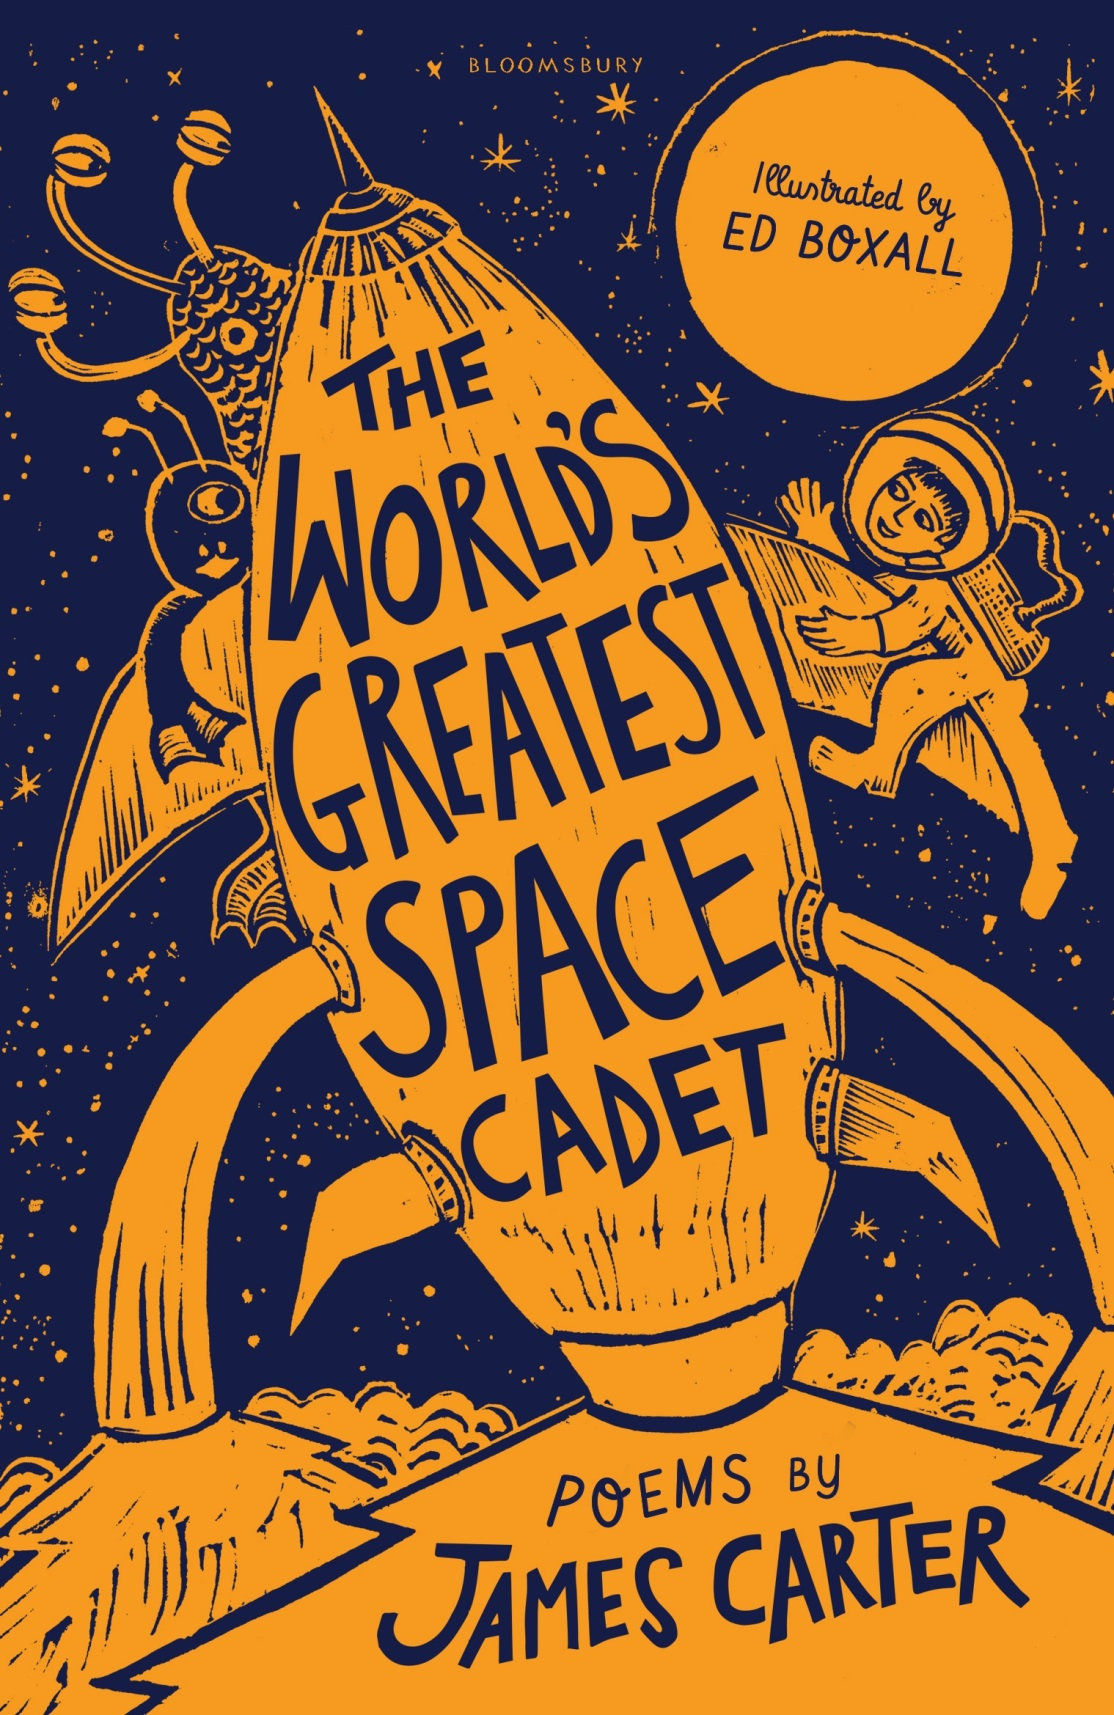 Poetry Book Cover Uk : James carter poet books for children